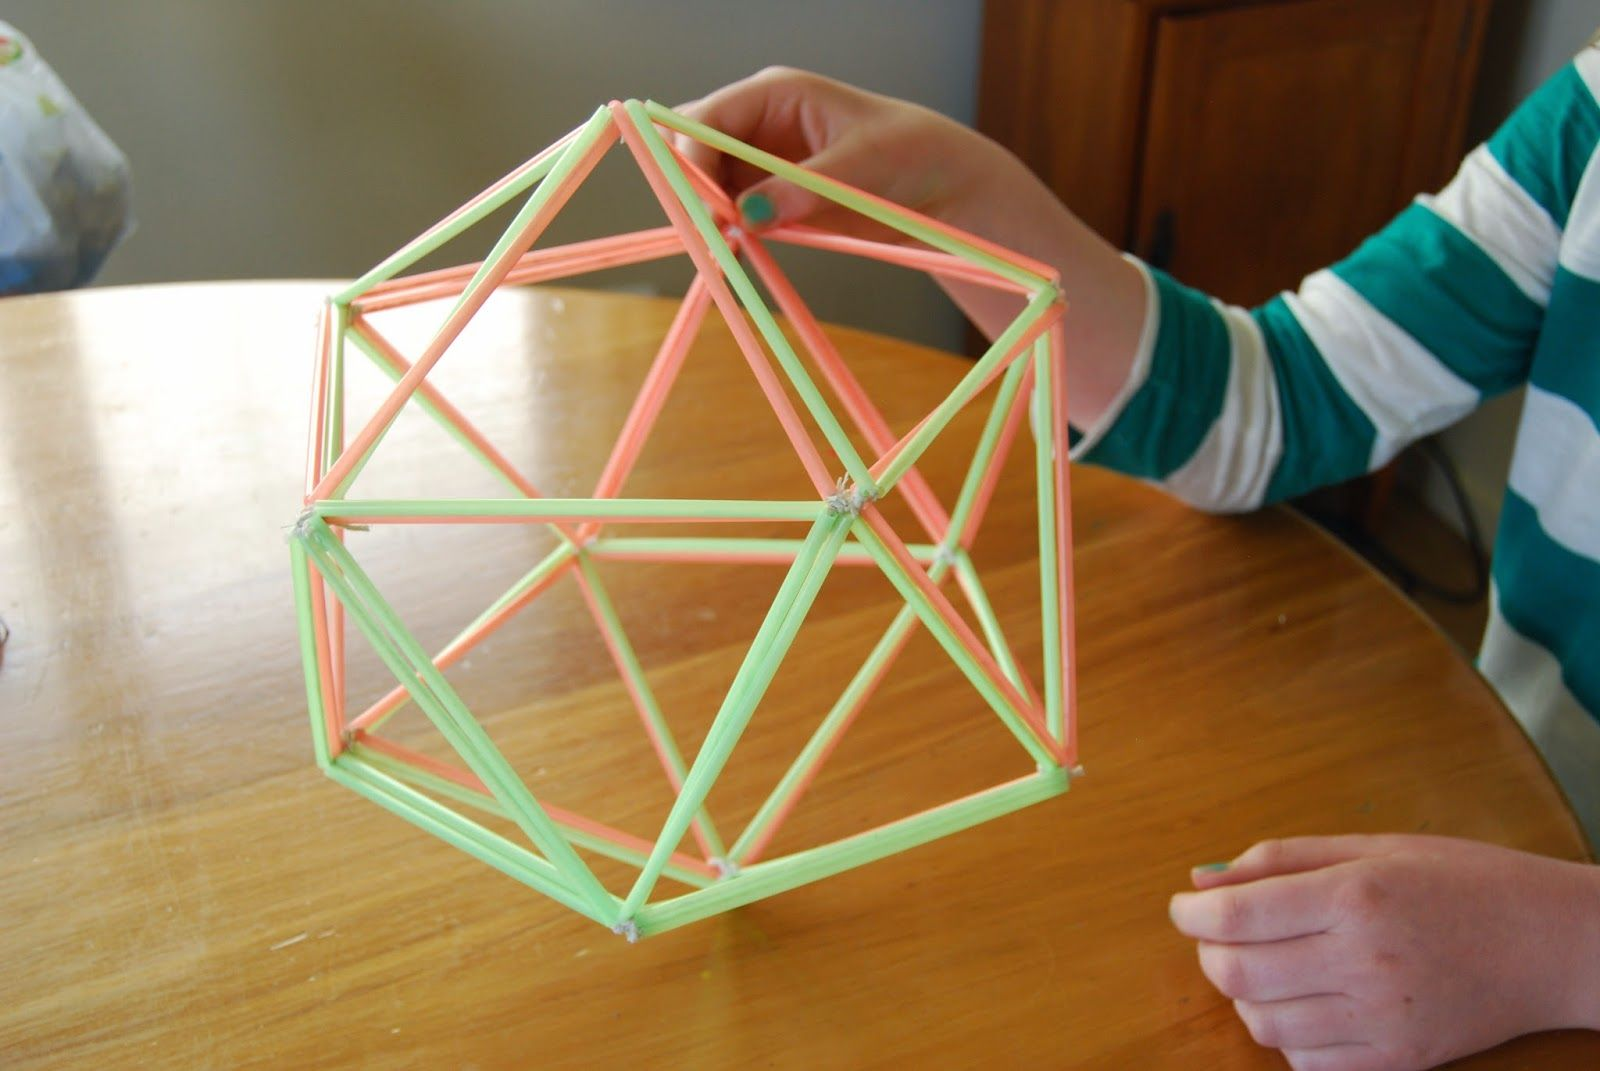 Ole Mother Hubbard Geometry Fun Week Tetrahedron And Octagonal Prism Made From Straws String